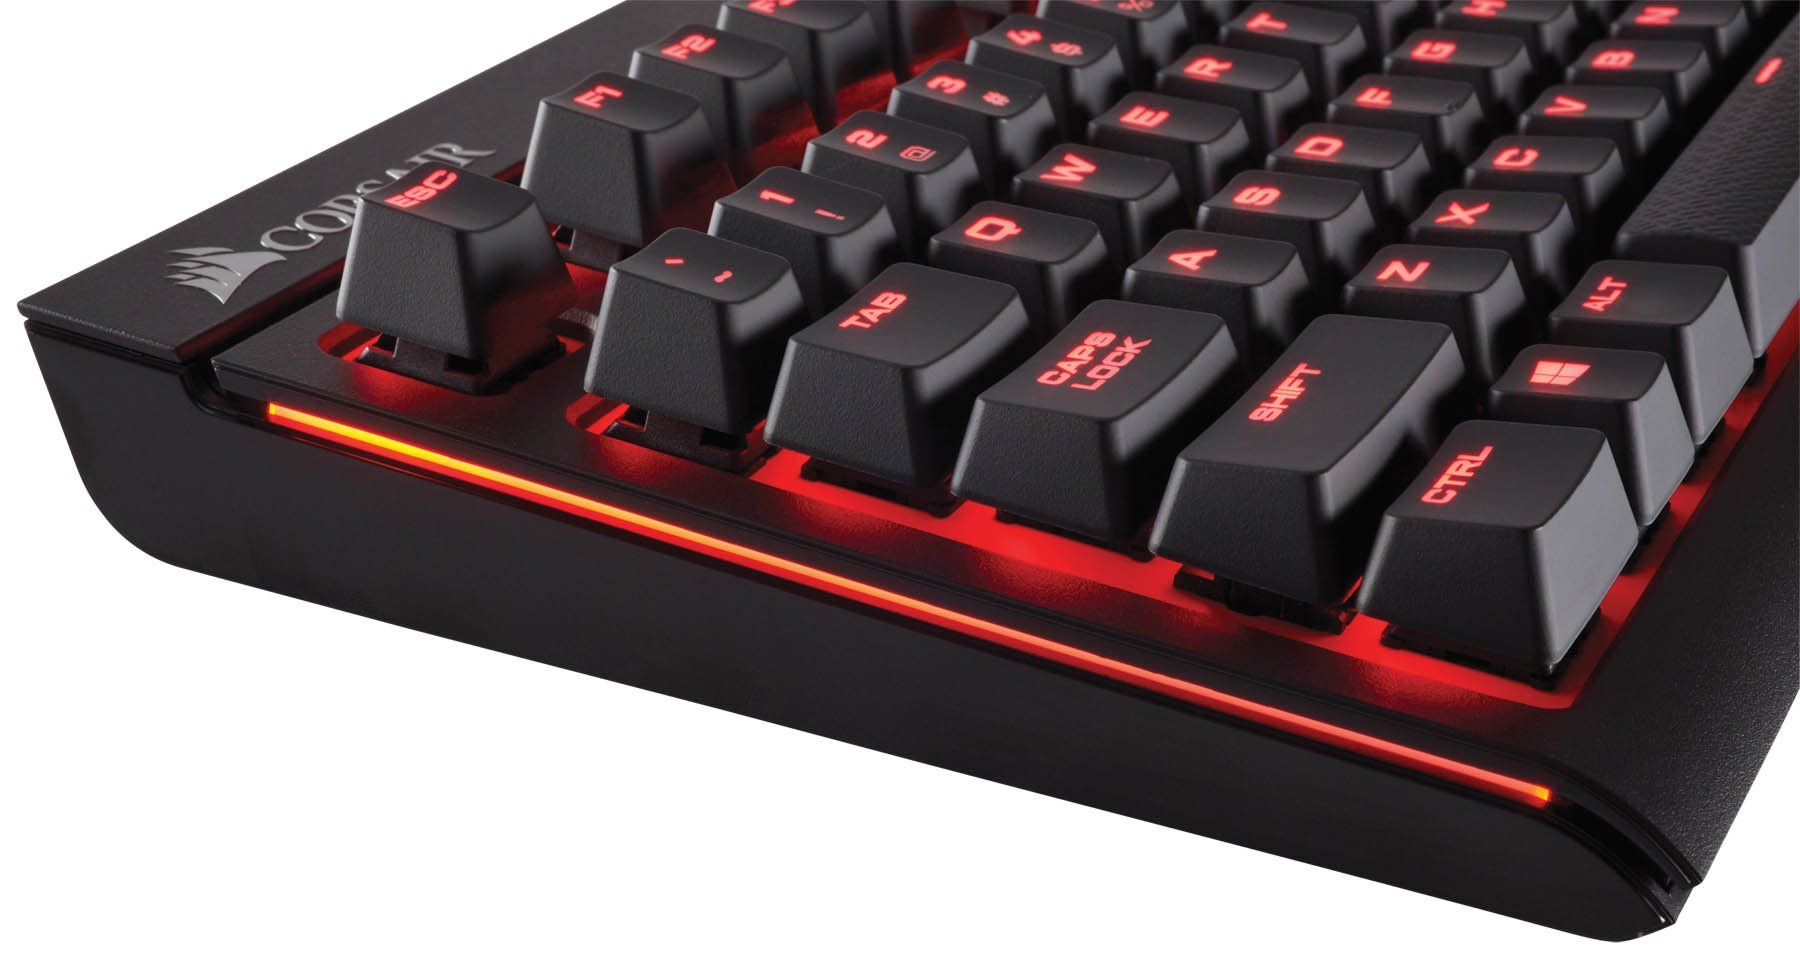 CORSAIR Strafe Mechanical Gaming Keyboard Renewed USB Passthrough Cherry MX Red Switch Linear and Quiet Red LED Backlit